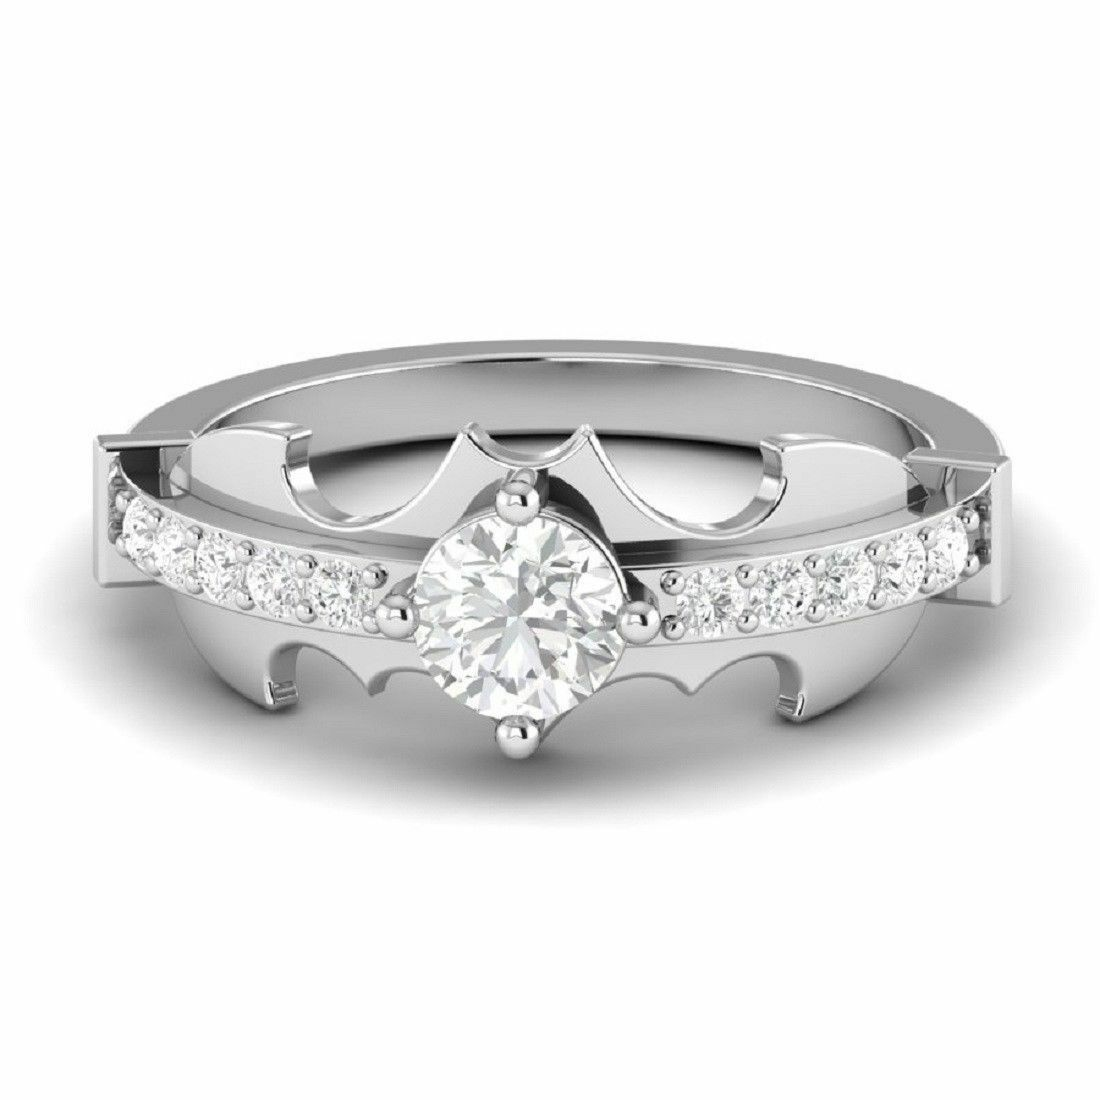 Certified 2.45Ct White Diamond Batman Design Engagement Ring in 14K White gold